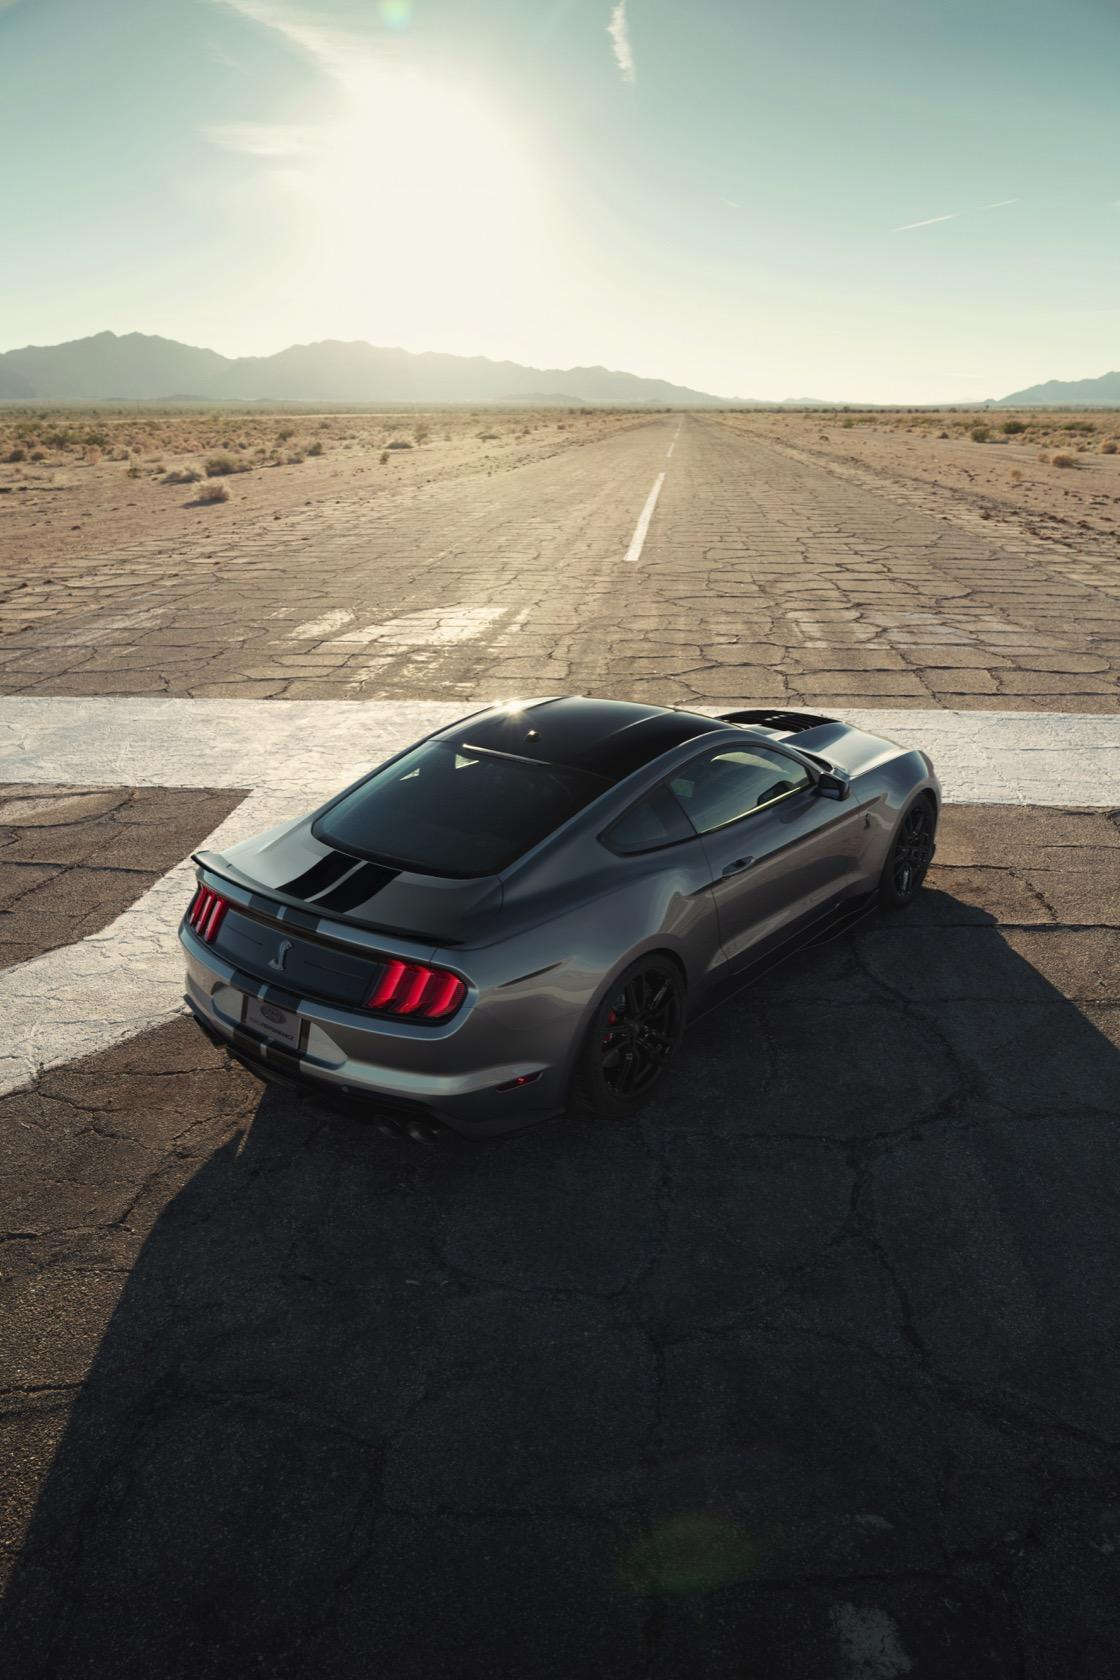 2020 Mustang Shelby GT500 is a 700+ horsepower supercar